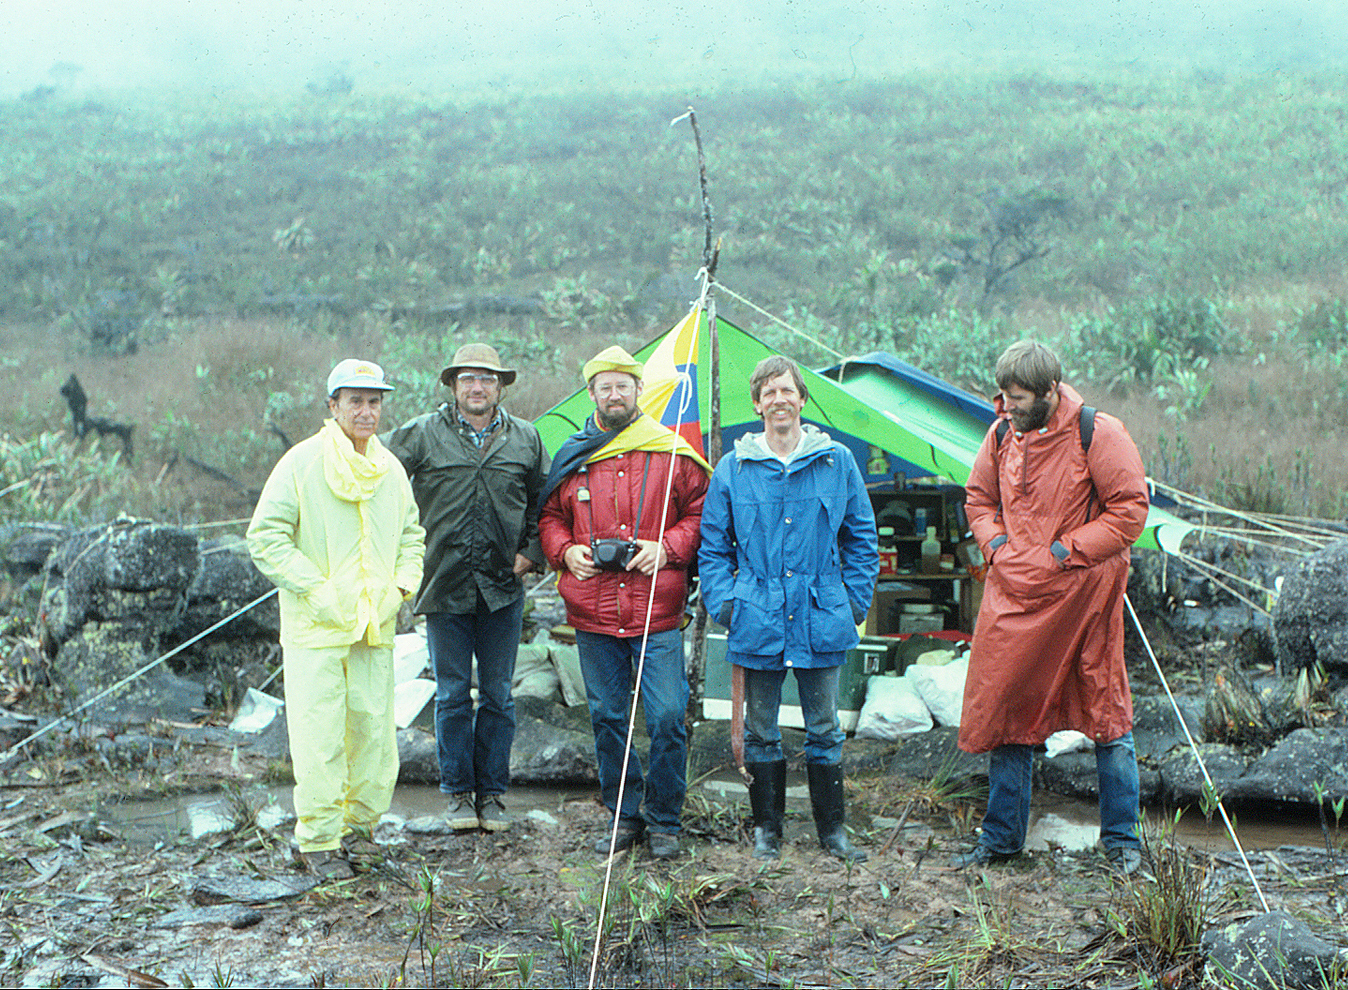 Expedition to Cerro Marahuaca in 1982. Photographer unknown.